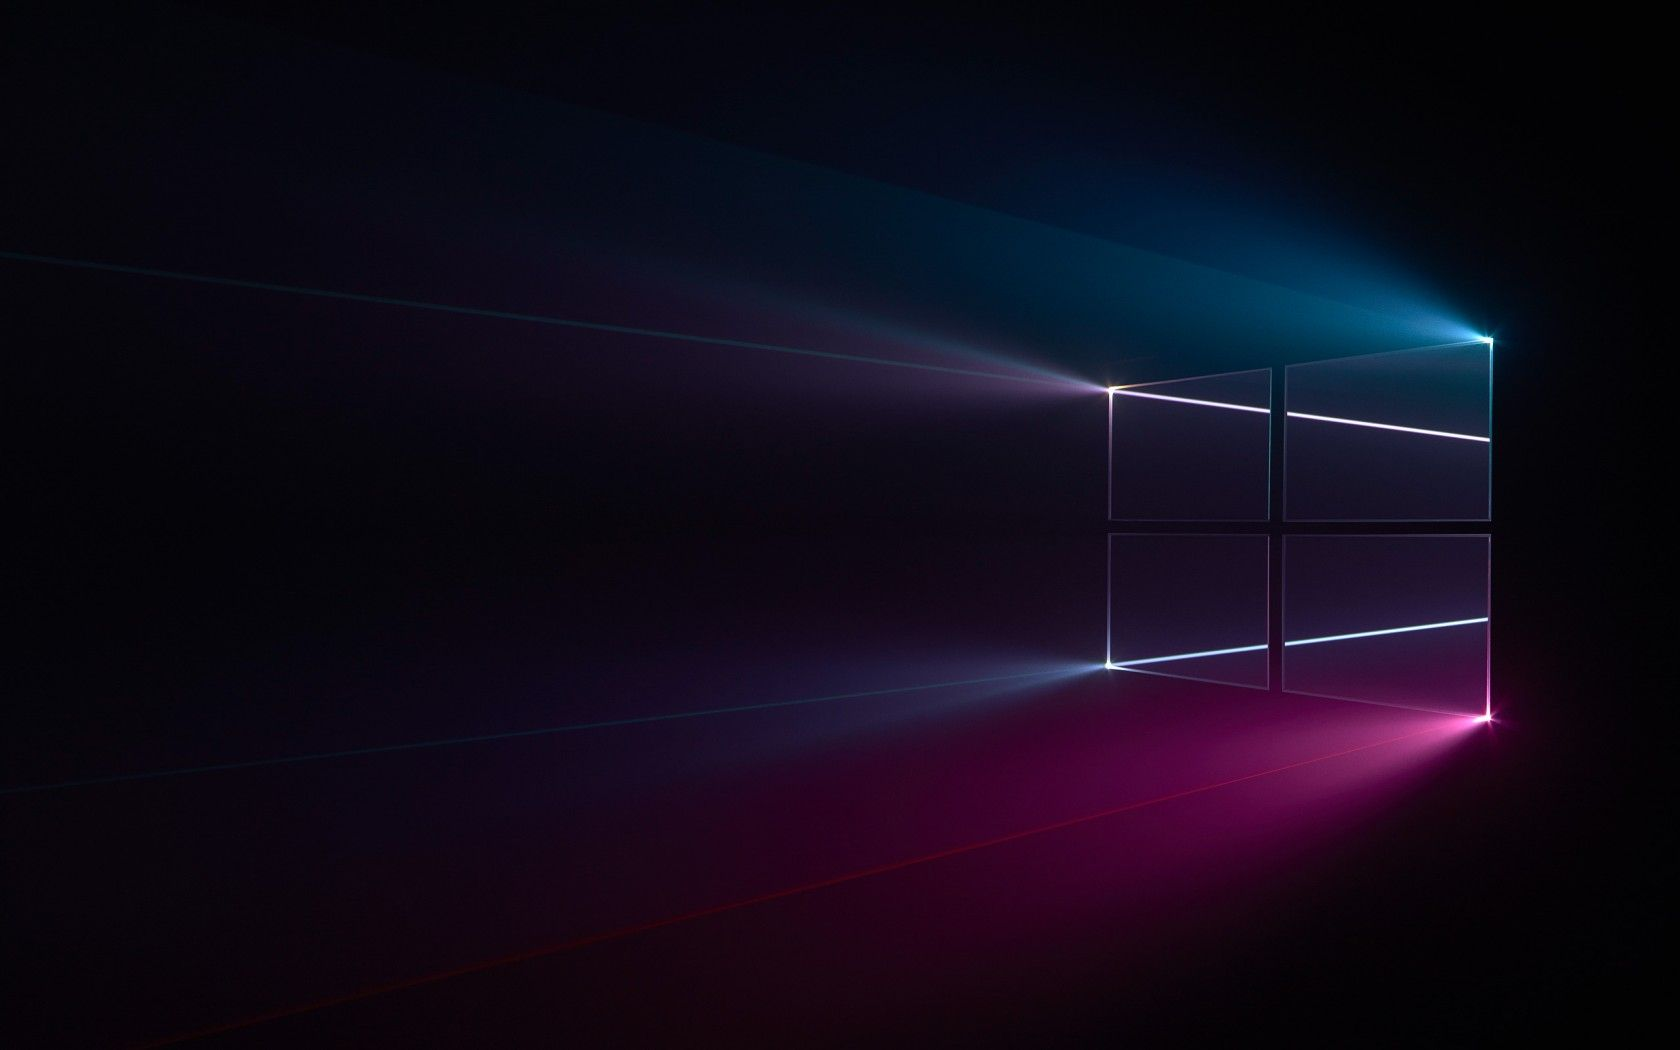 Best Wallpapers For Pc